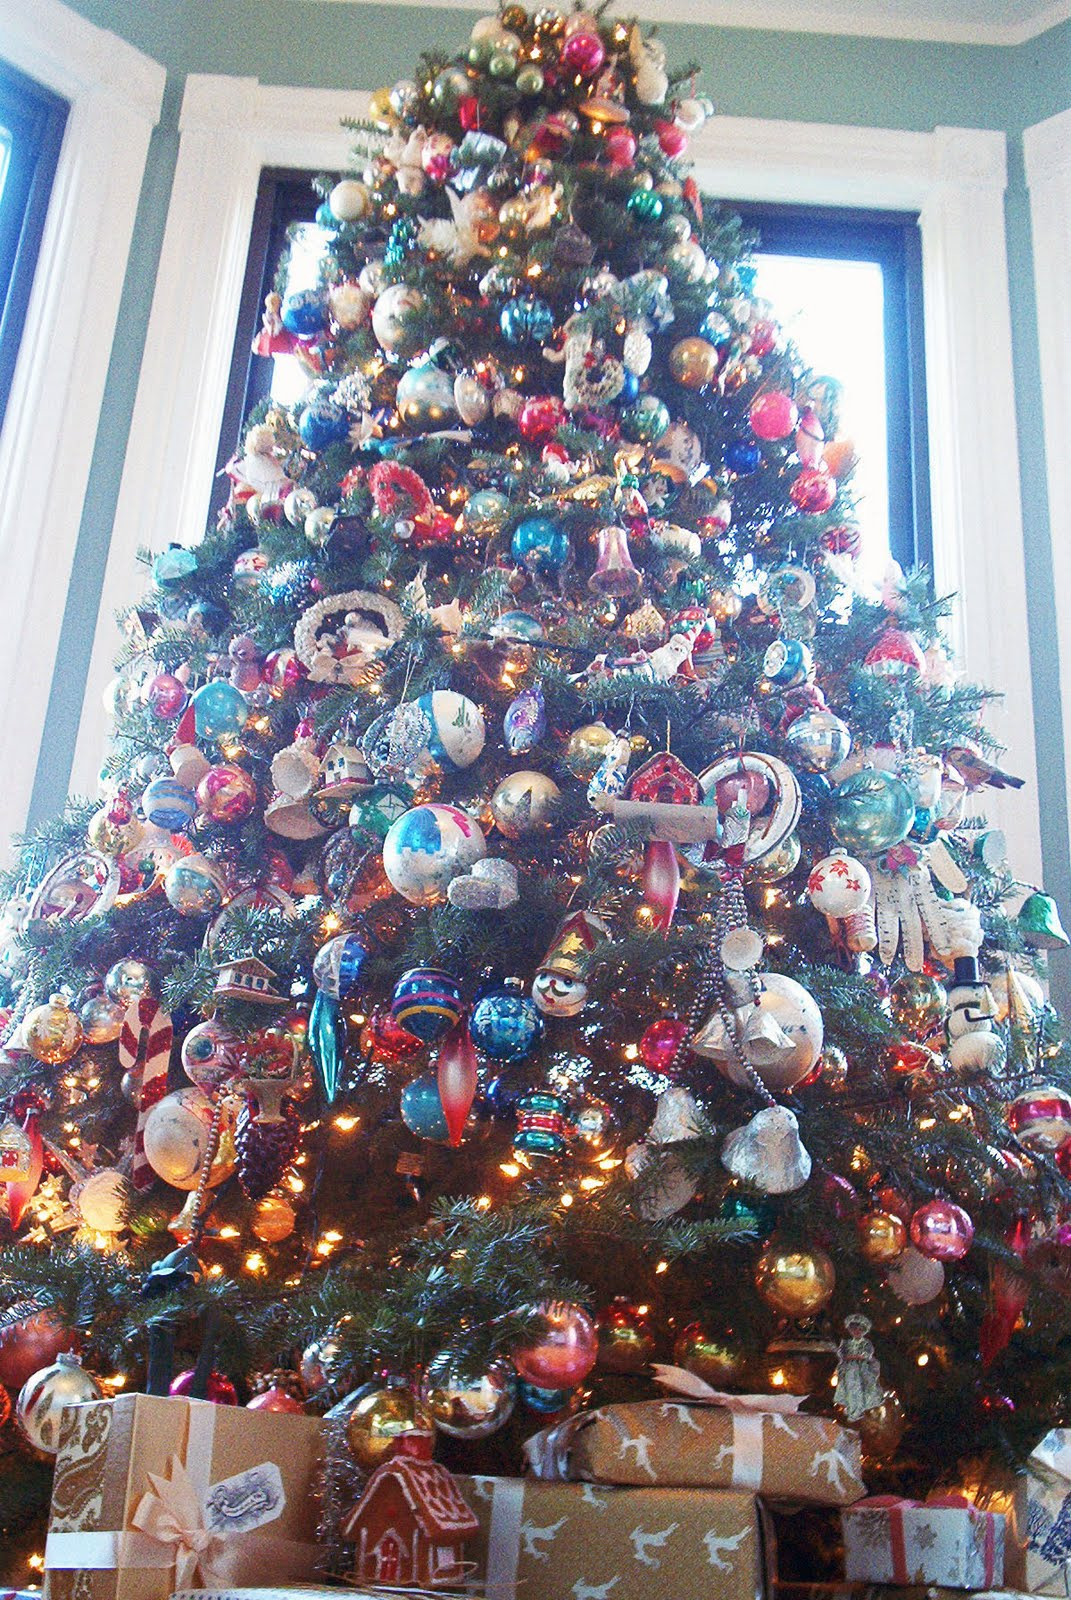 merry christmas everyone to celebrate the biggest holiday of the year ill finally show you my tree and all of the other goodies ive got hanging around - How To Decorate A Big Christmas Tree